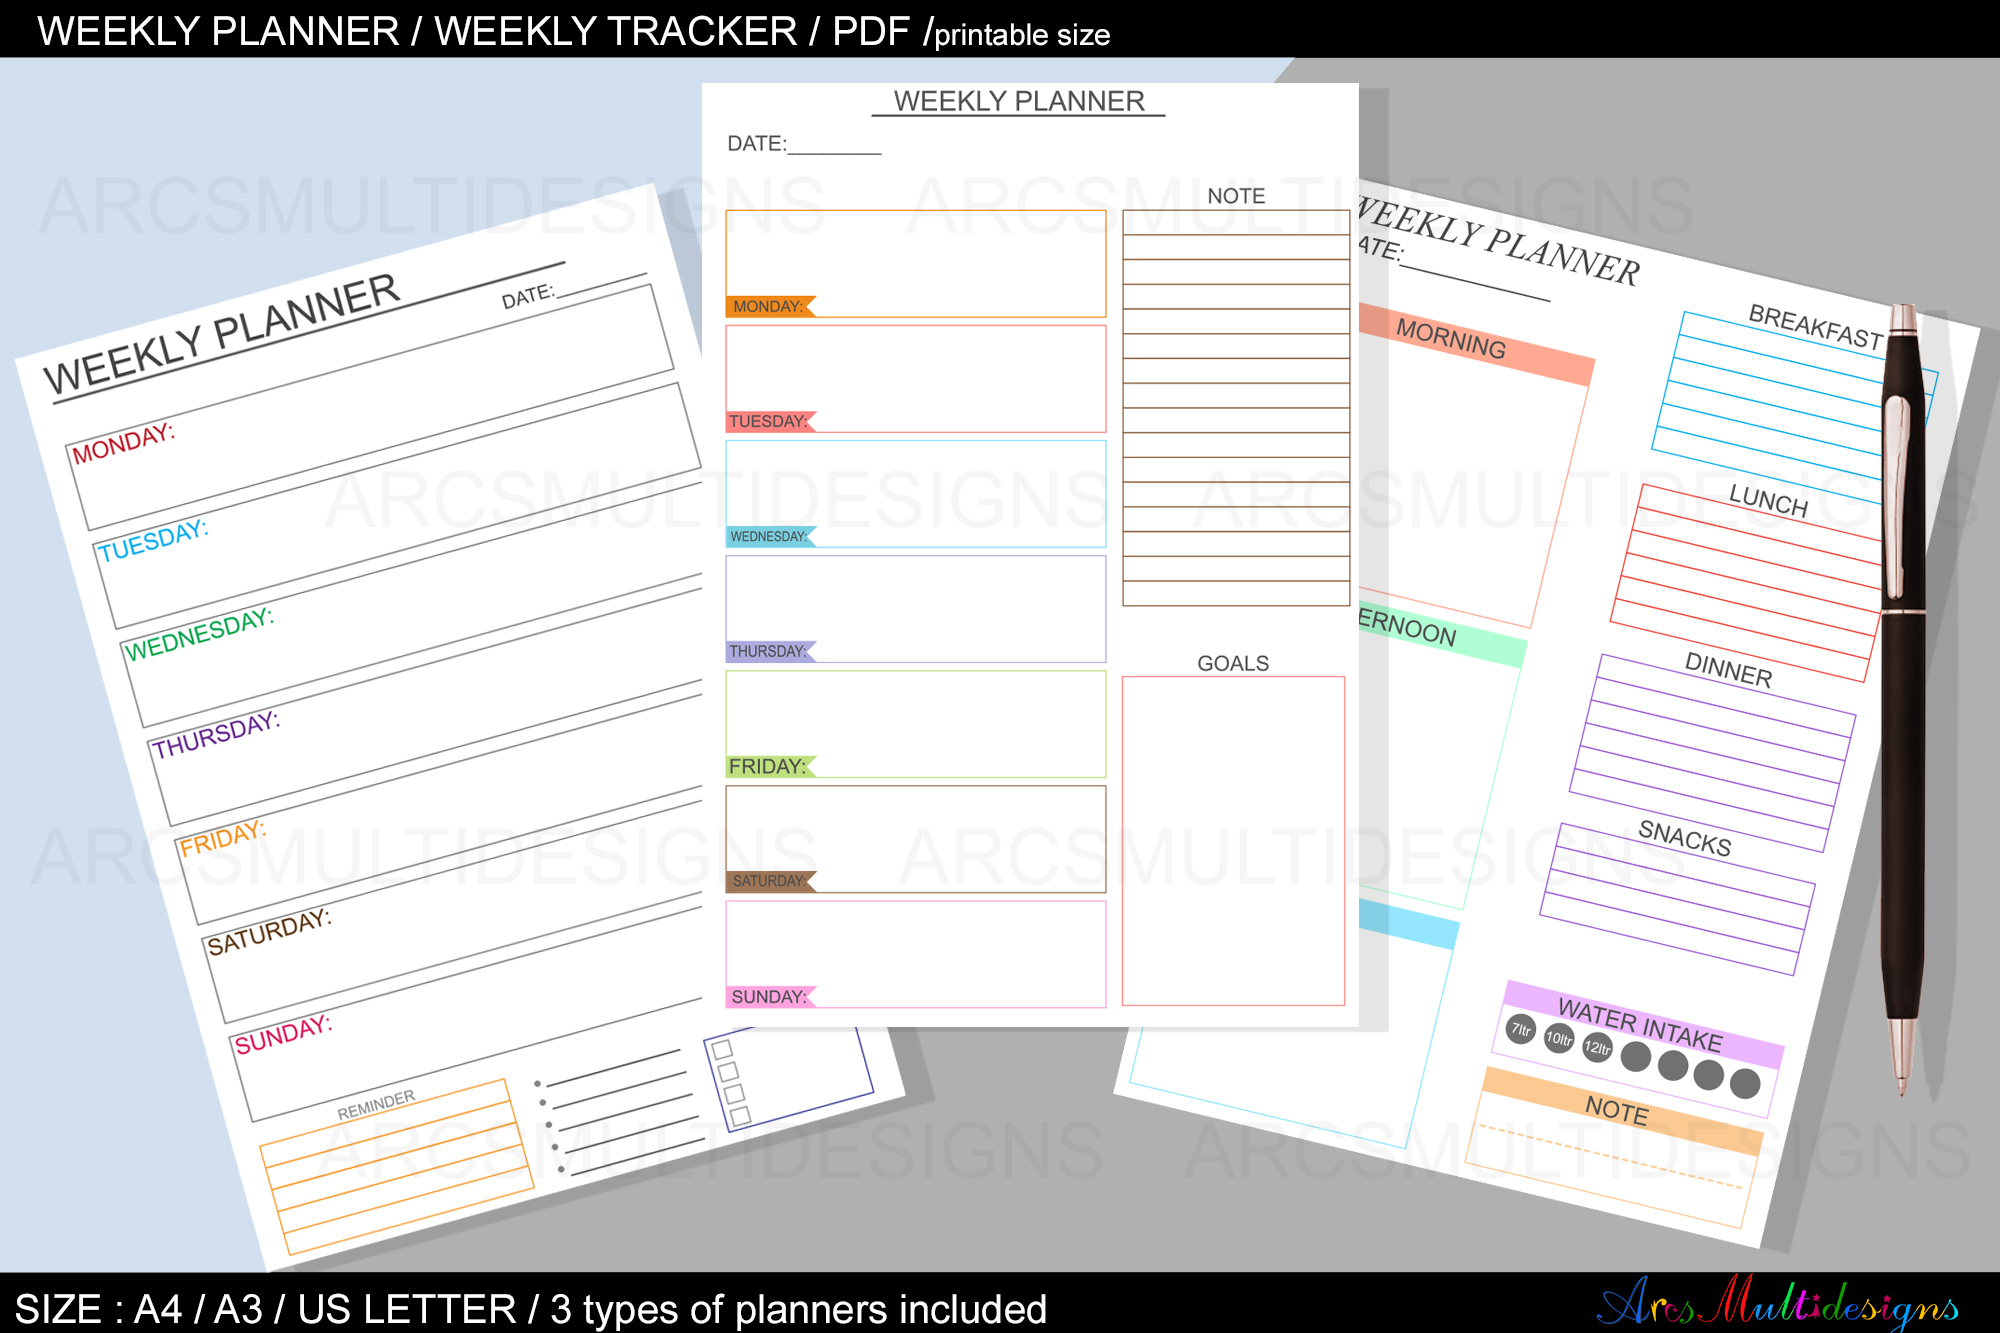 Download Free Weekly Planner Printable Undated Graphic By Arcs Multidesigns for Cricut Explore, Silhouette and other cutting machines.